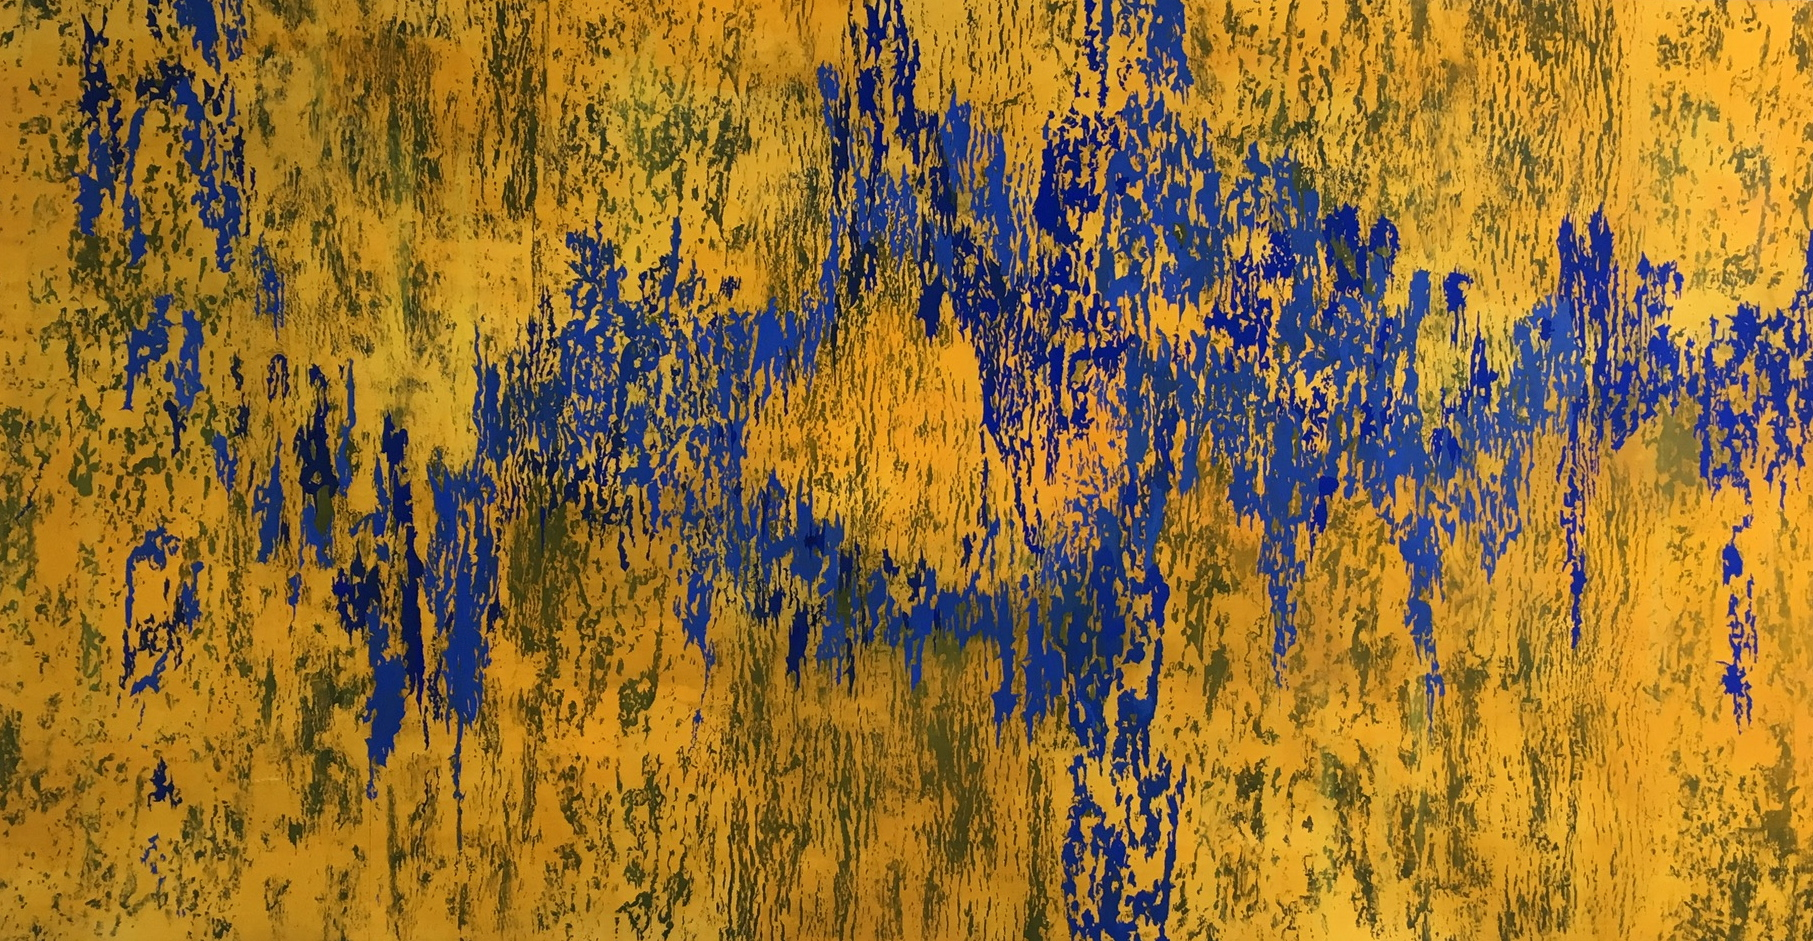 Composition in Ultramarine and yellow, milk paint on paper 154 x 274 cm 2016